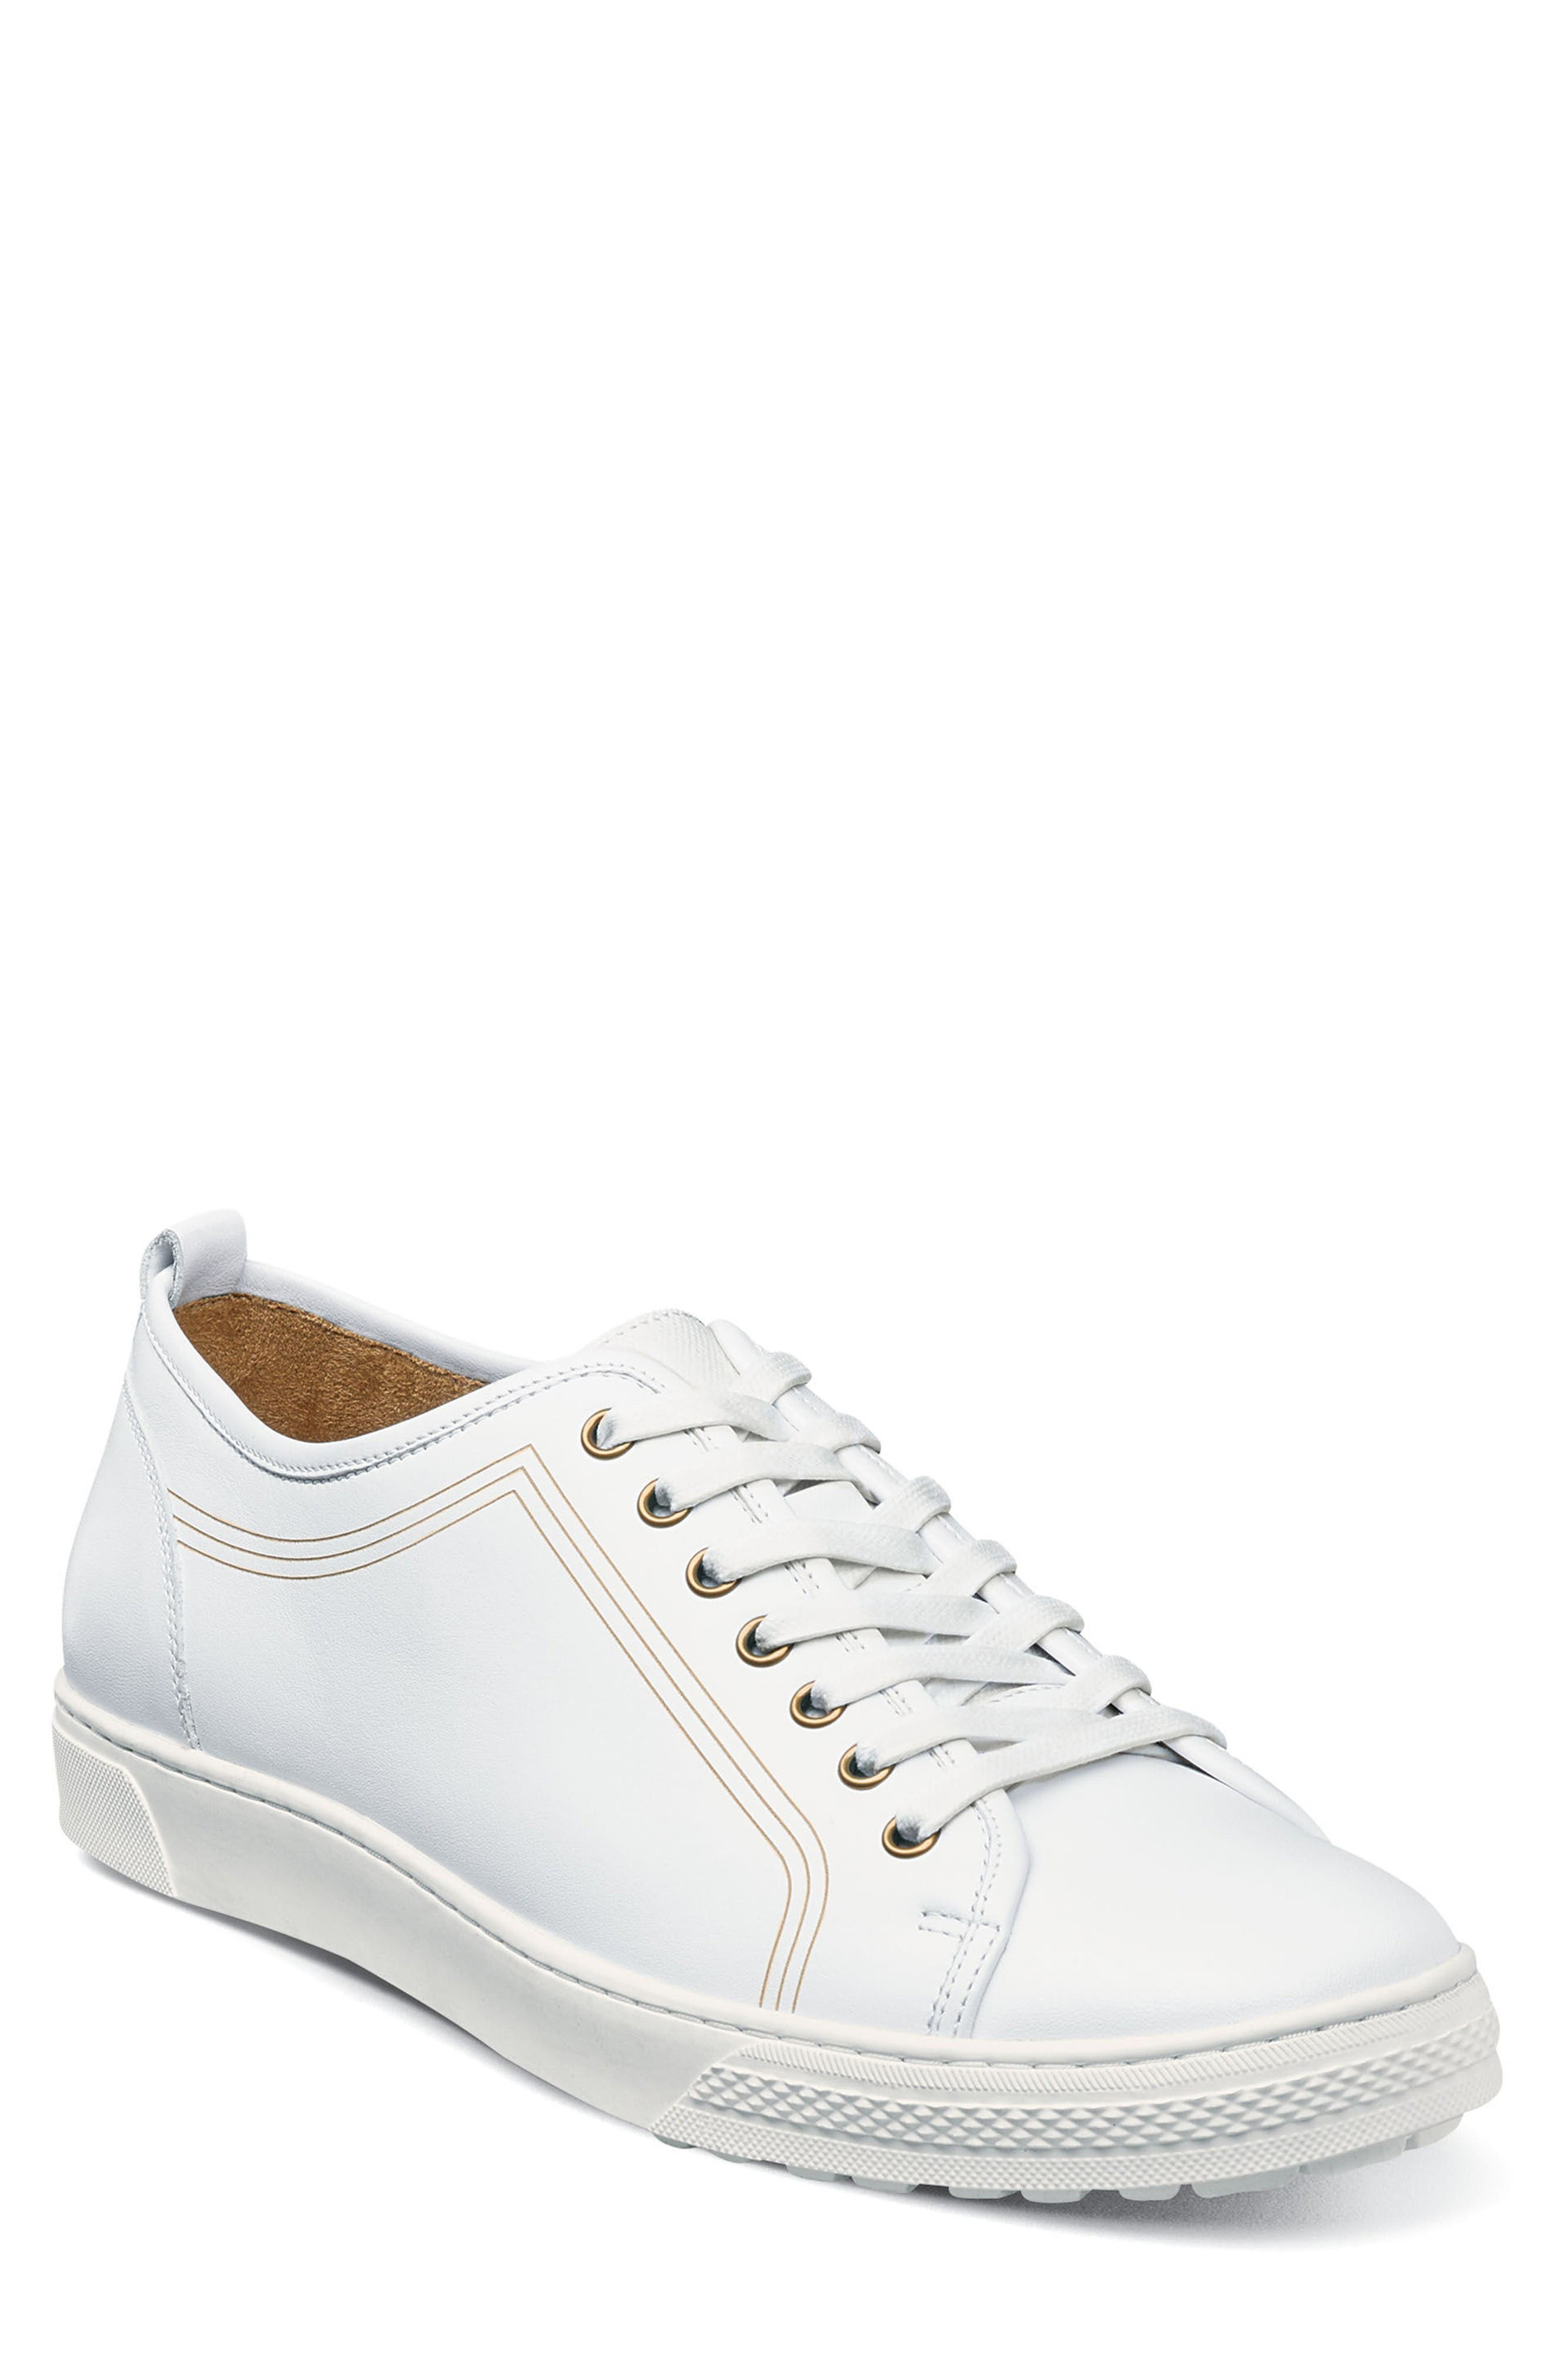 Forward Lo Sneaker,                             Main thumbnail 1, color,                             White Leather